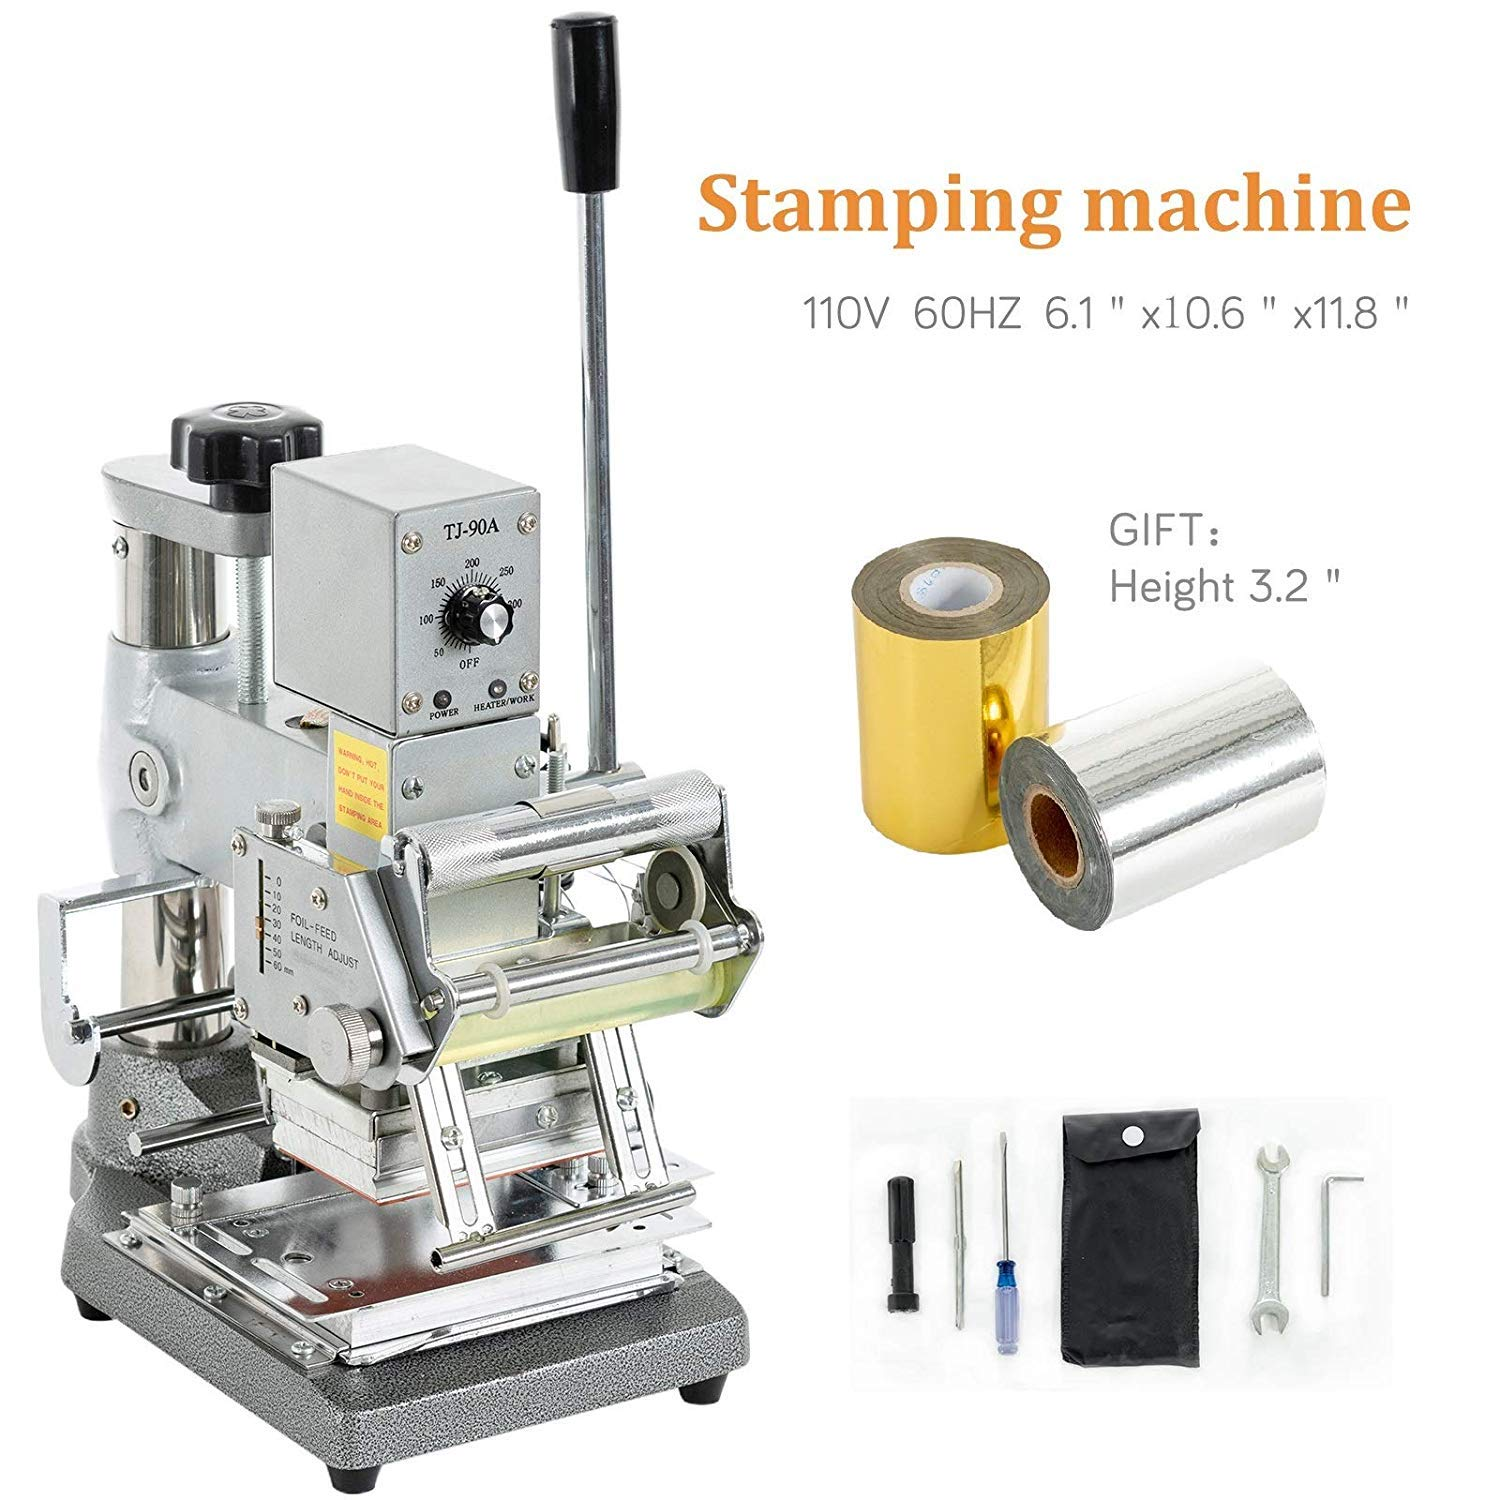 SUNCOO Hot Foil Stamping Machine 2.4 Inch x 3.5 Inch Bronzing Machine Embossing Machine Printing Logo for PVC Card, Credit Card with Foil Paper by SUNCOO